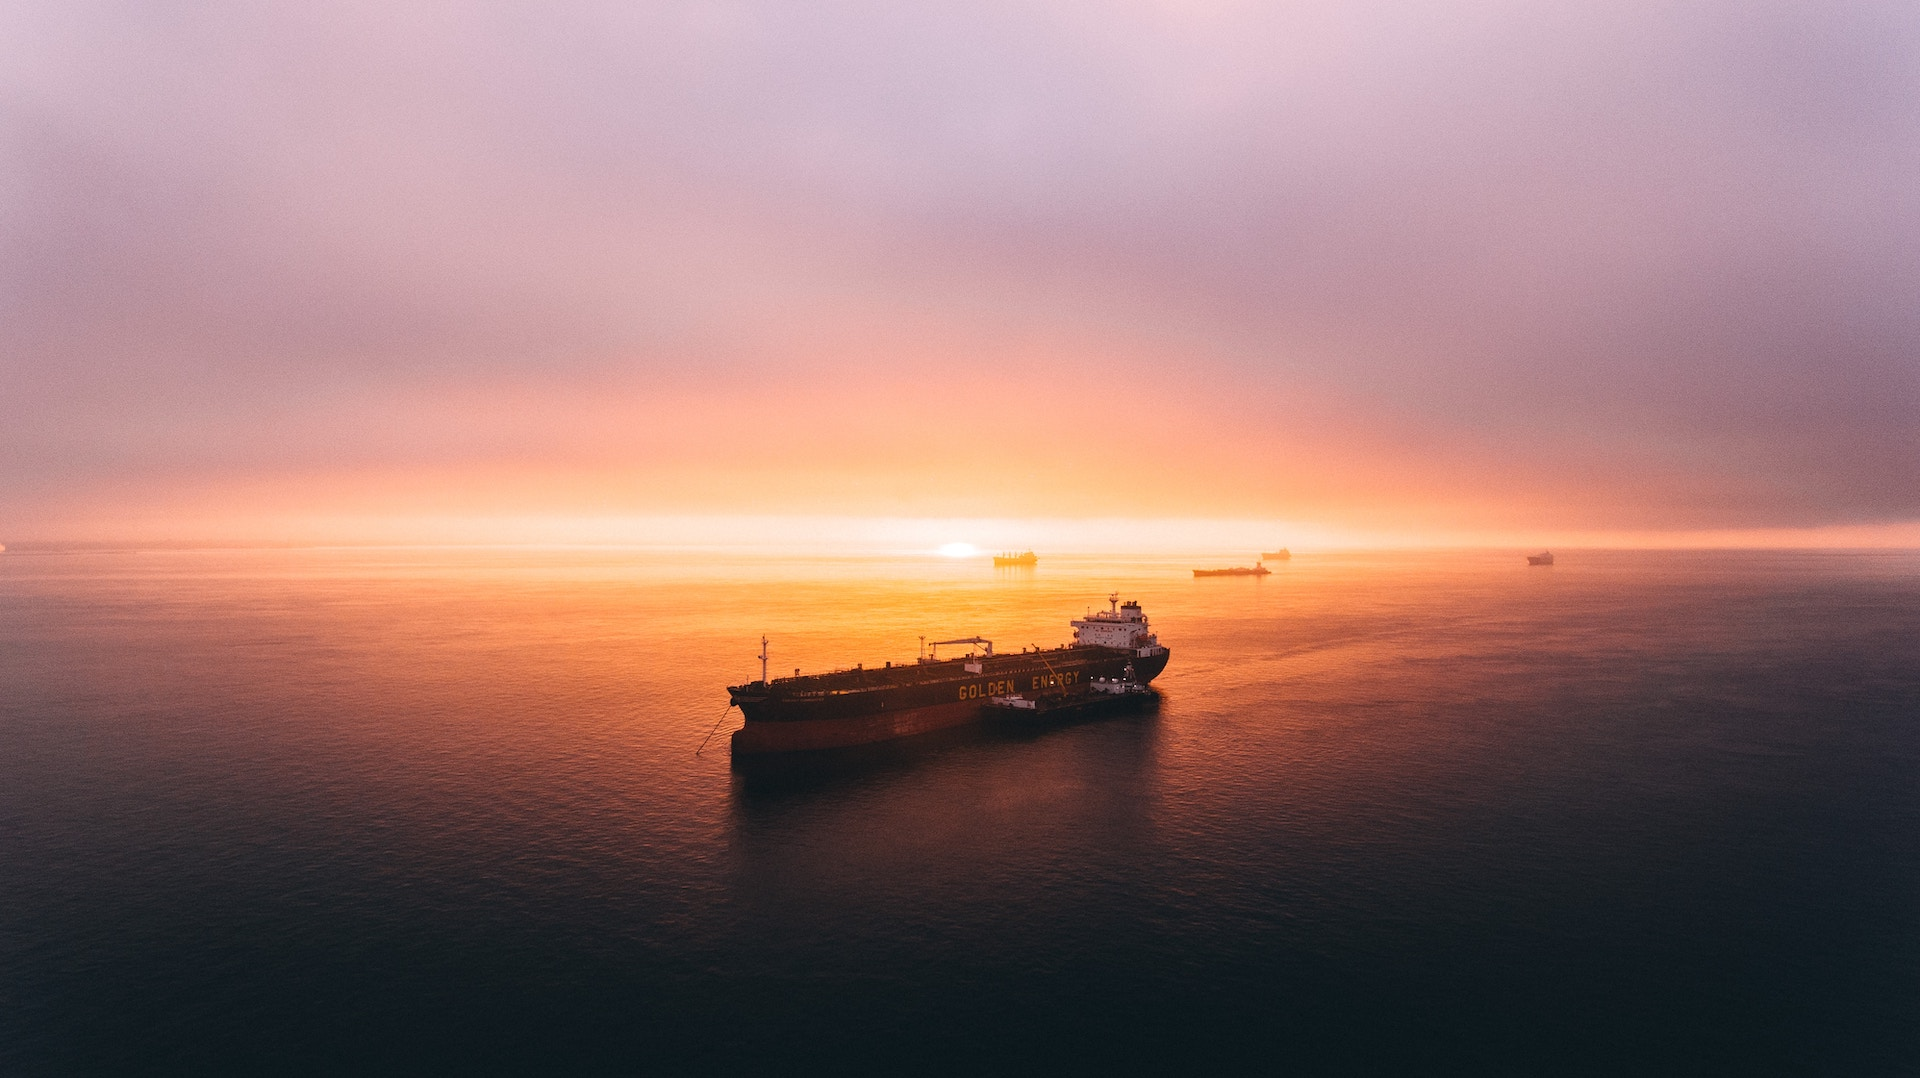 A cargo ship on the ocean at sunset meant to highlight marine finance, another alternative asset class